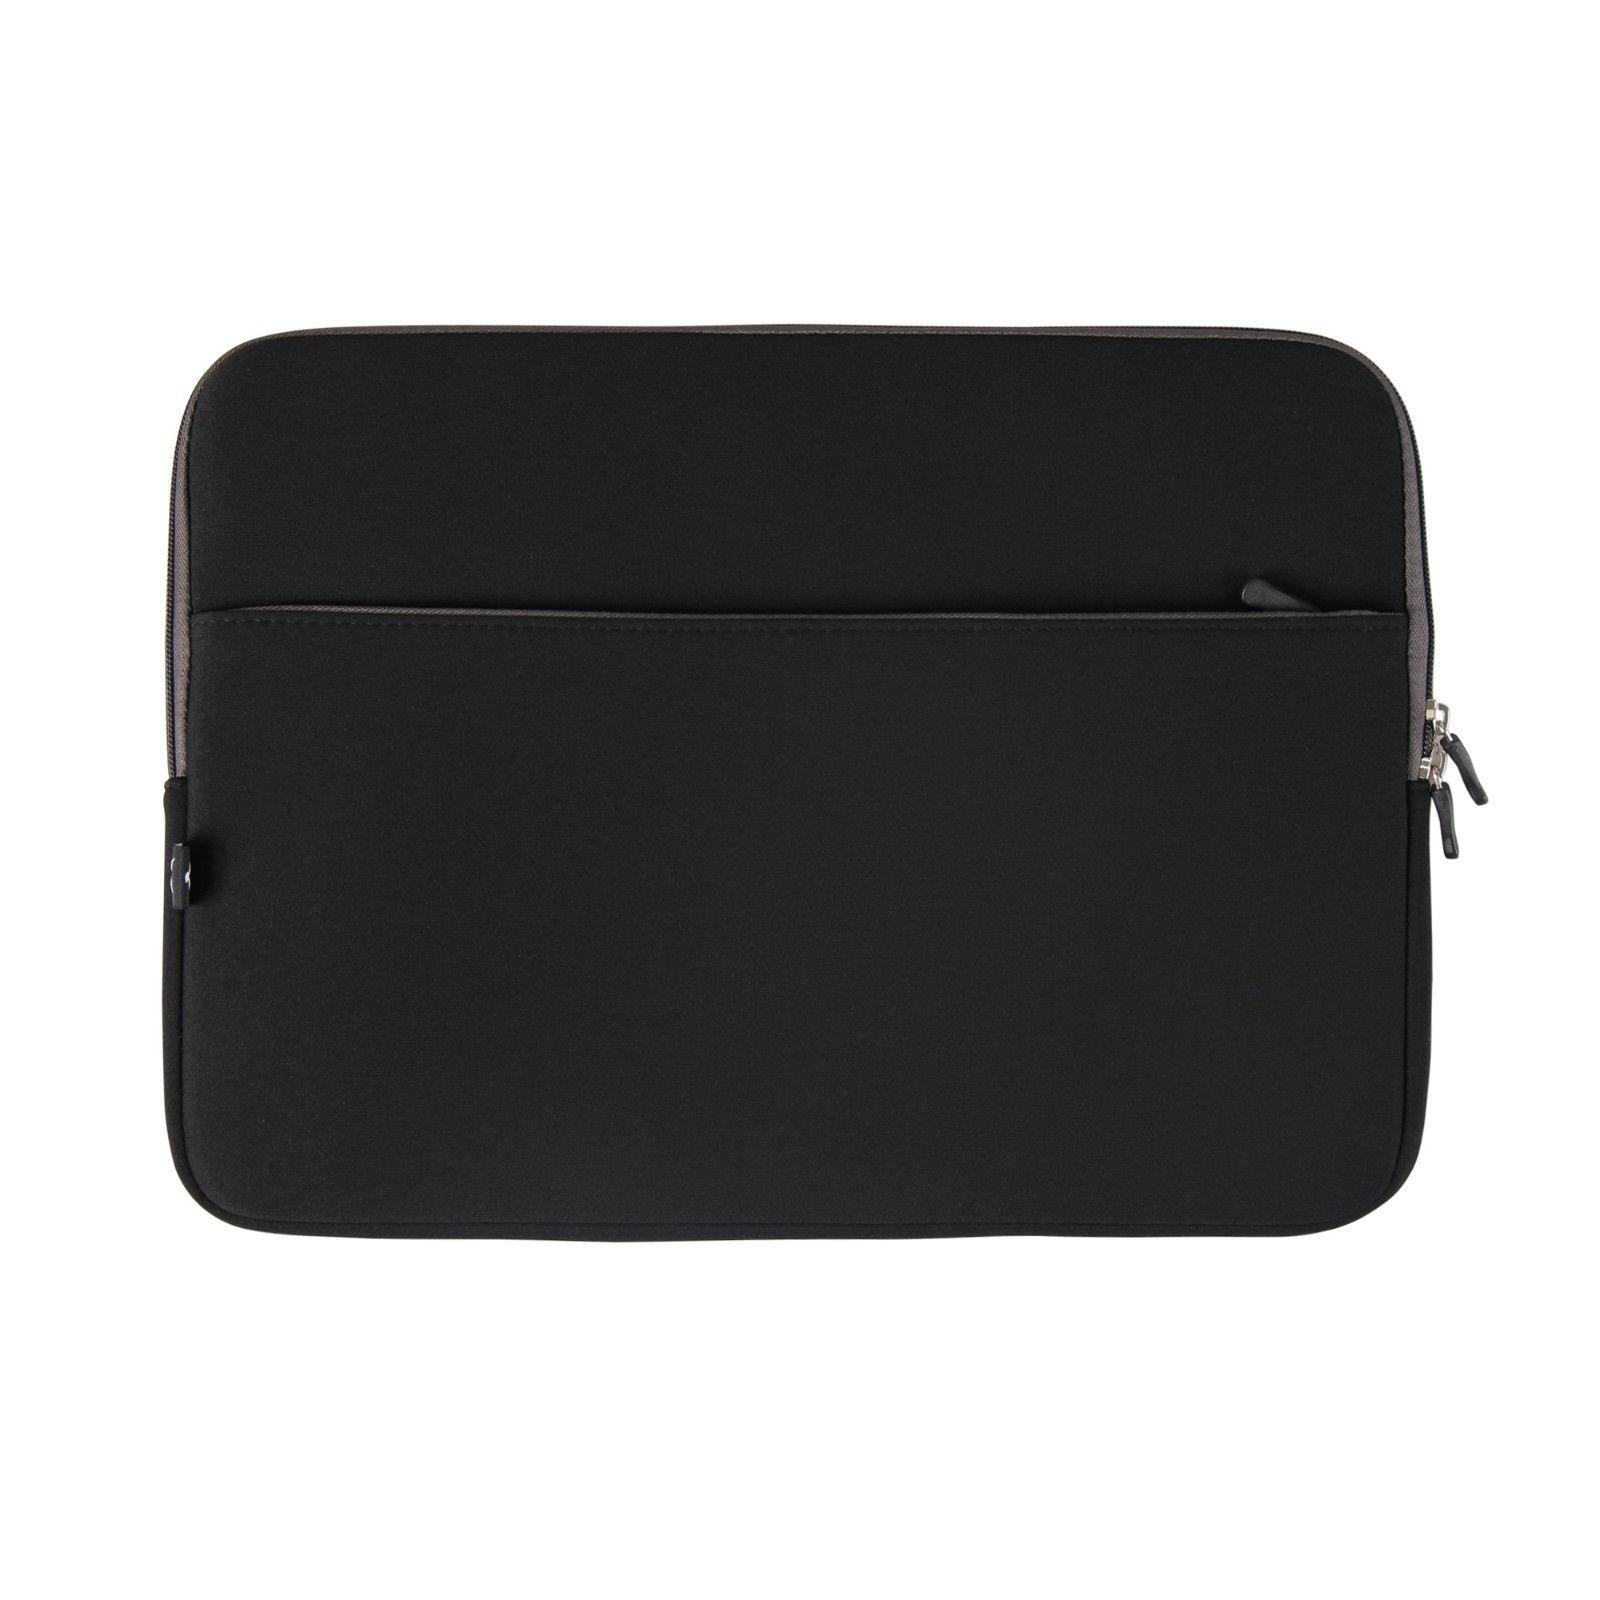 "Case Bag Cover Pouch for 15.6"" HP Dell Macbook"